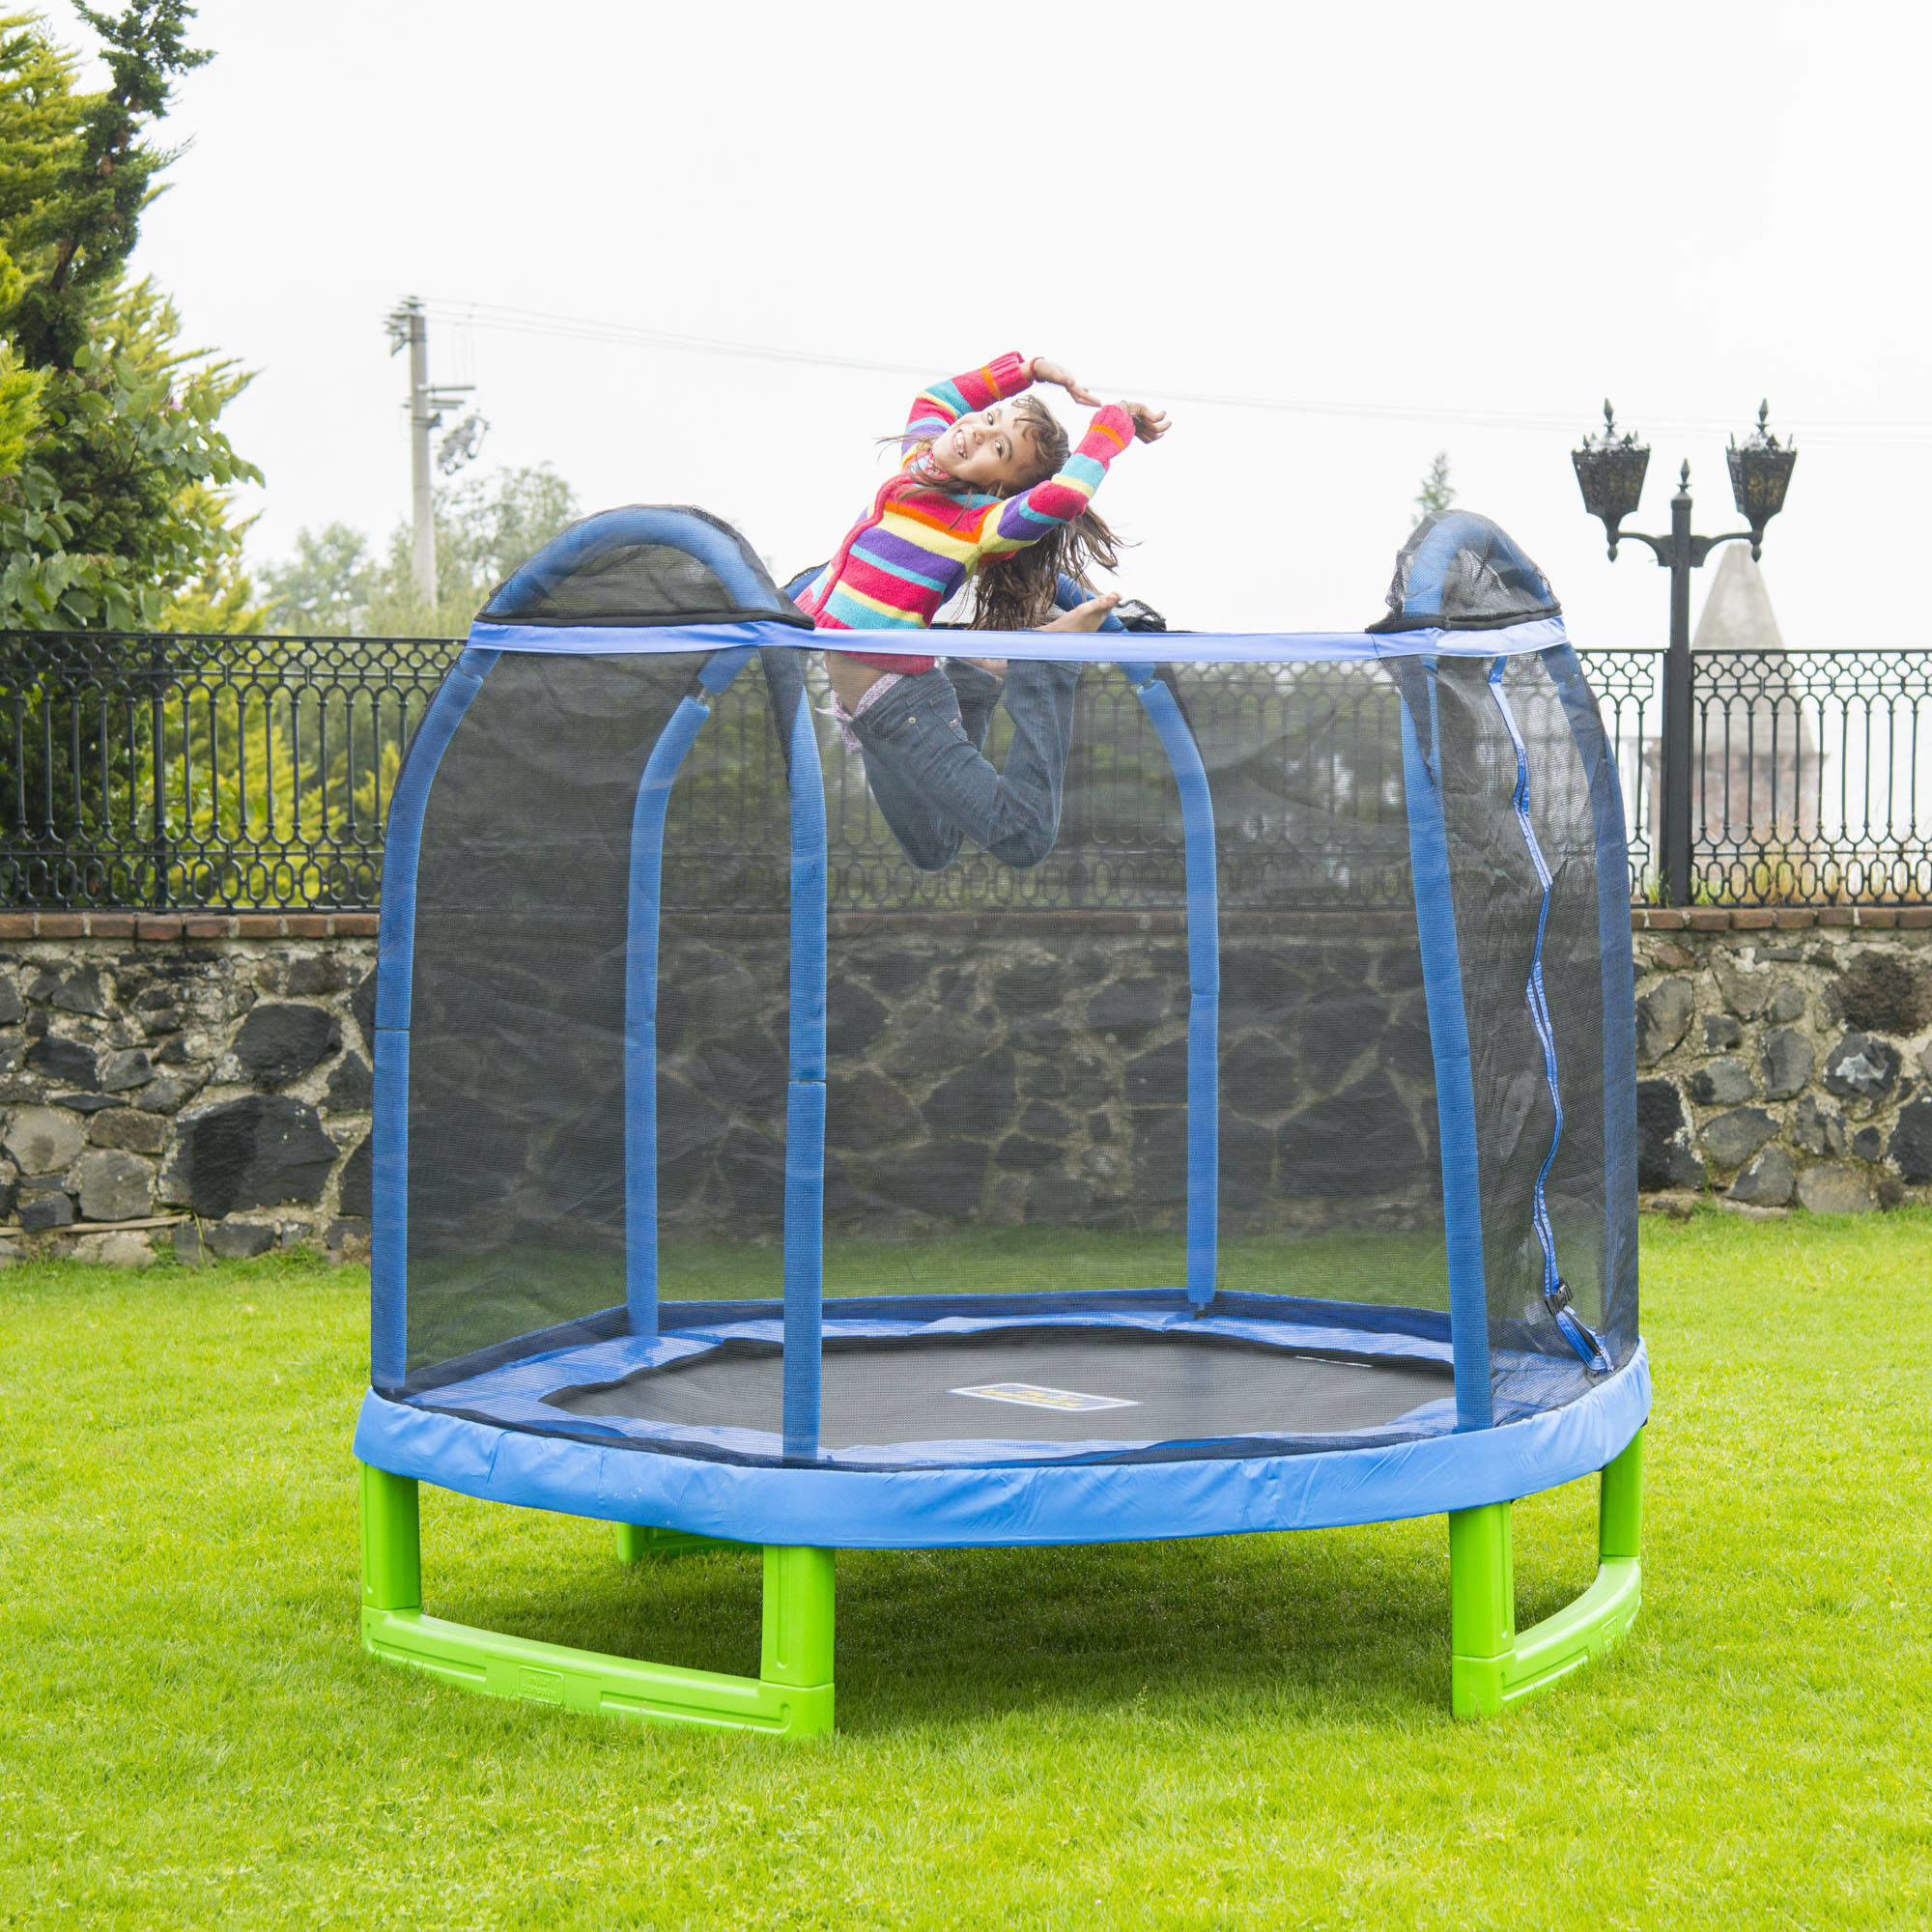 child jumping on an enclosed trampoline while smiling at the camera